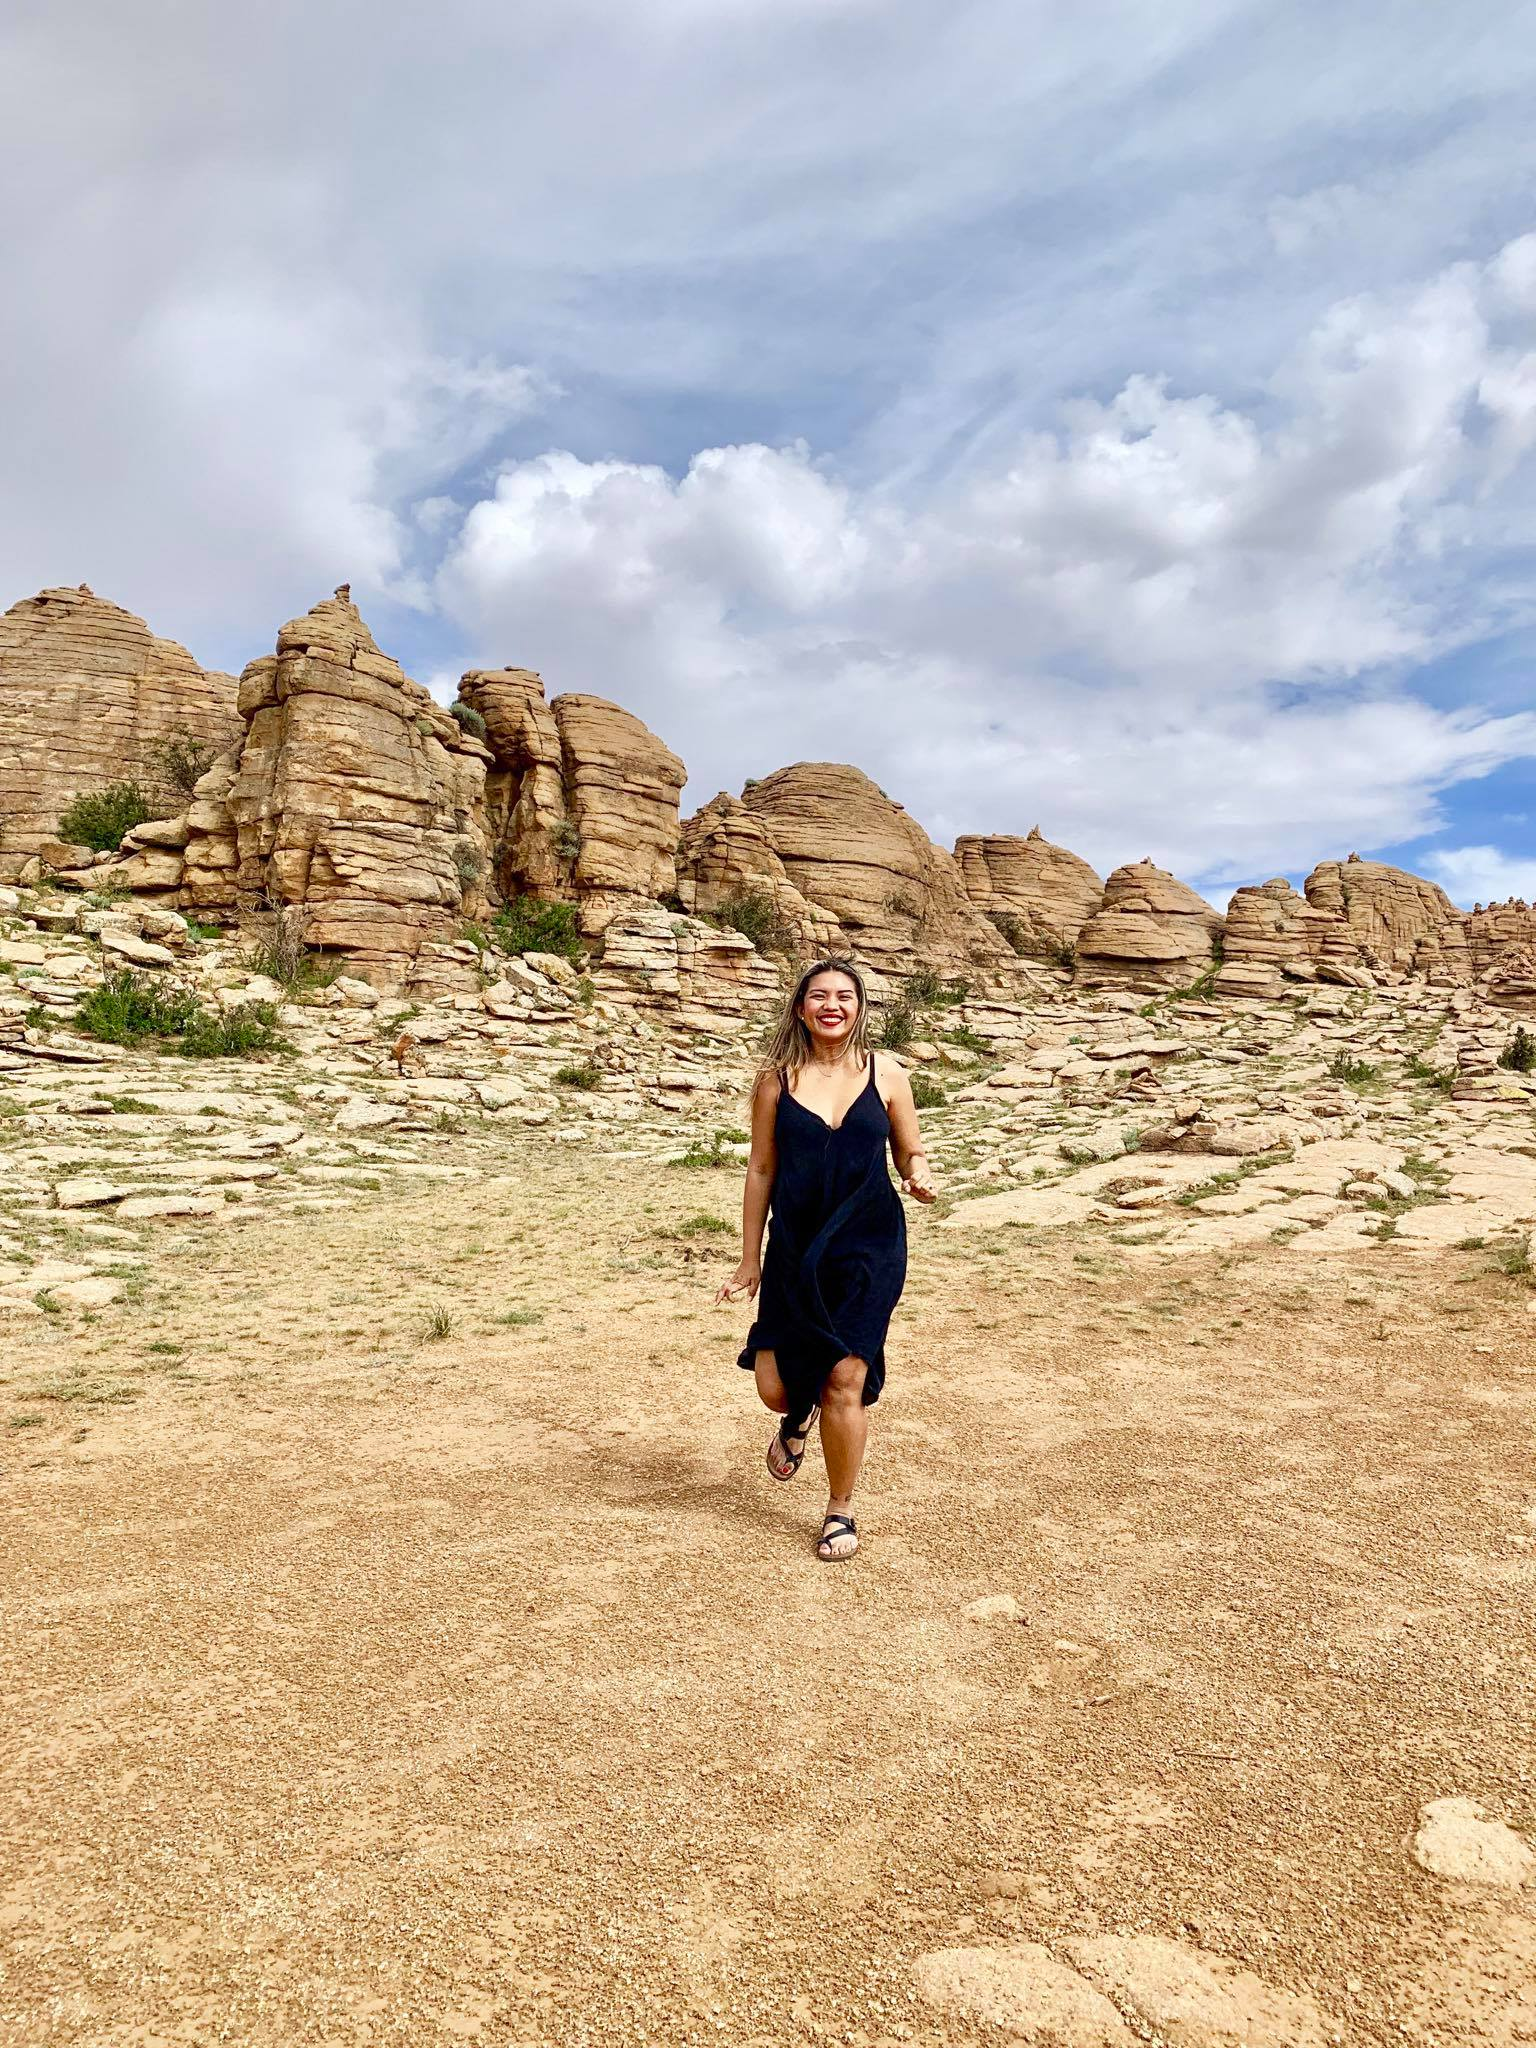 Kach Solo Travels in 2019 One of the hikes during my trip in Gobi desert6.jpg